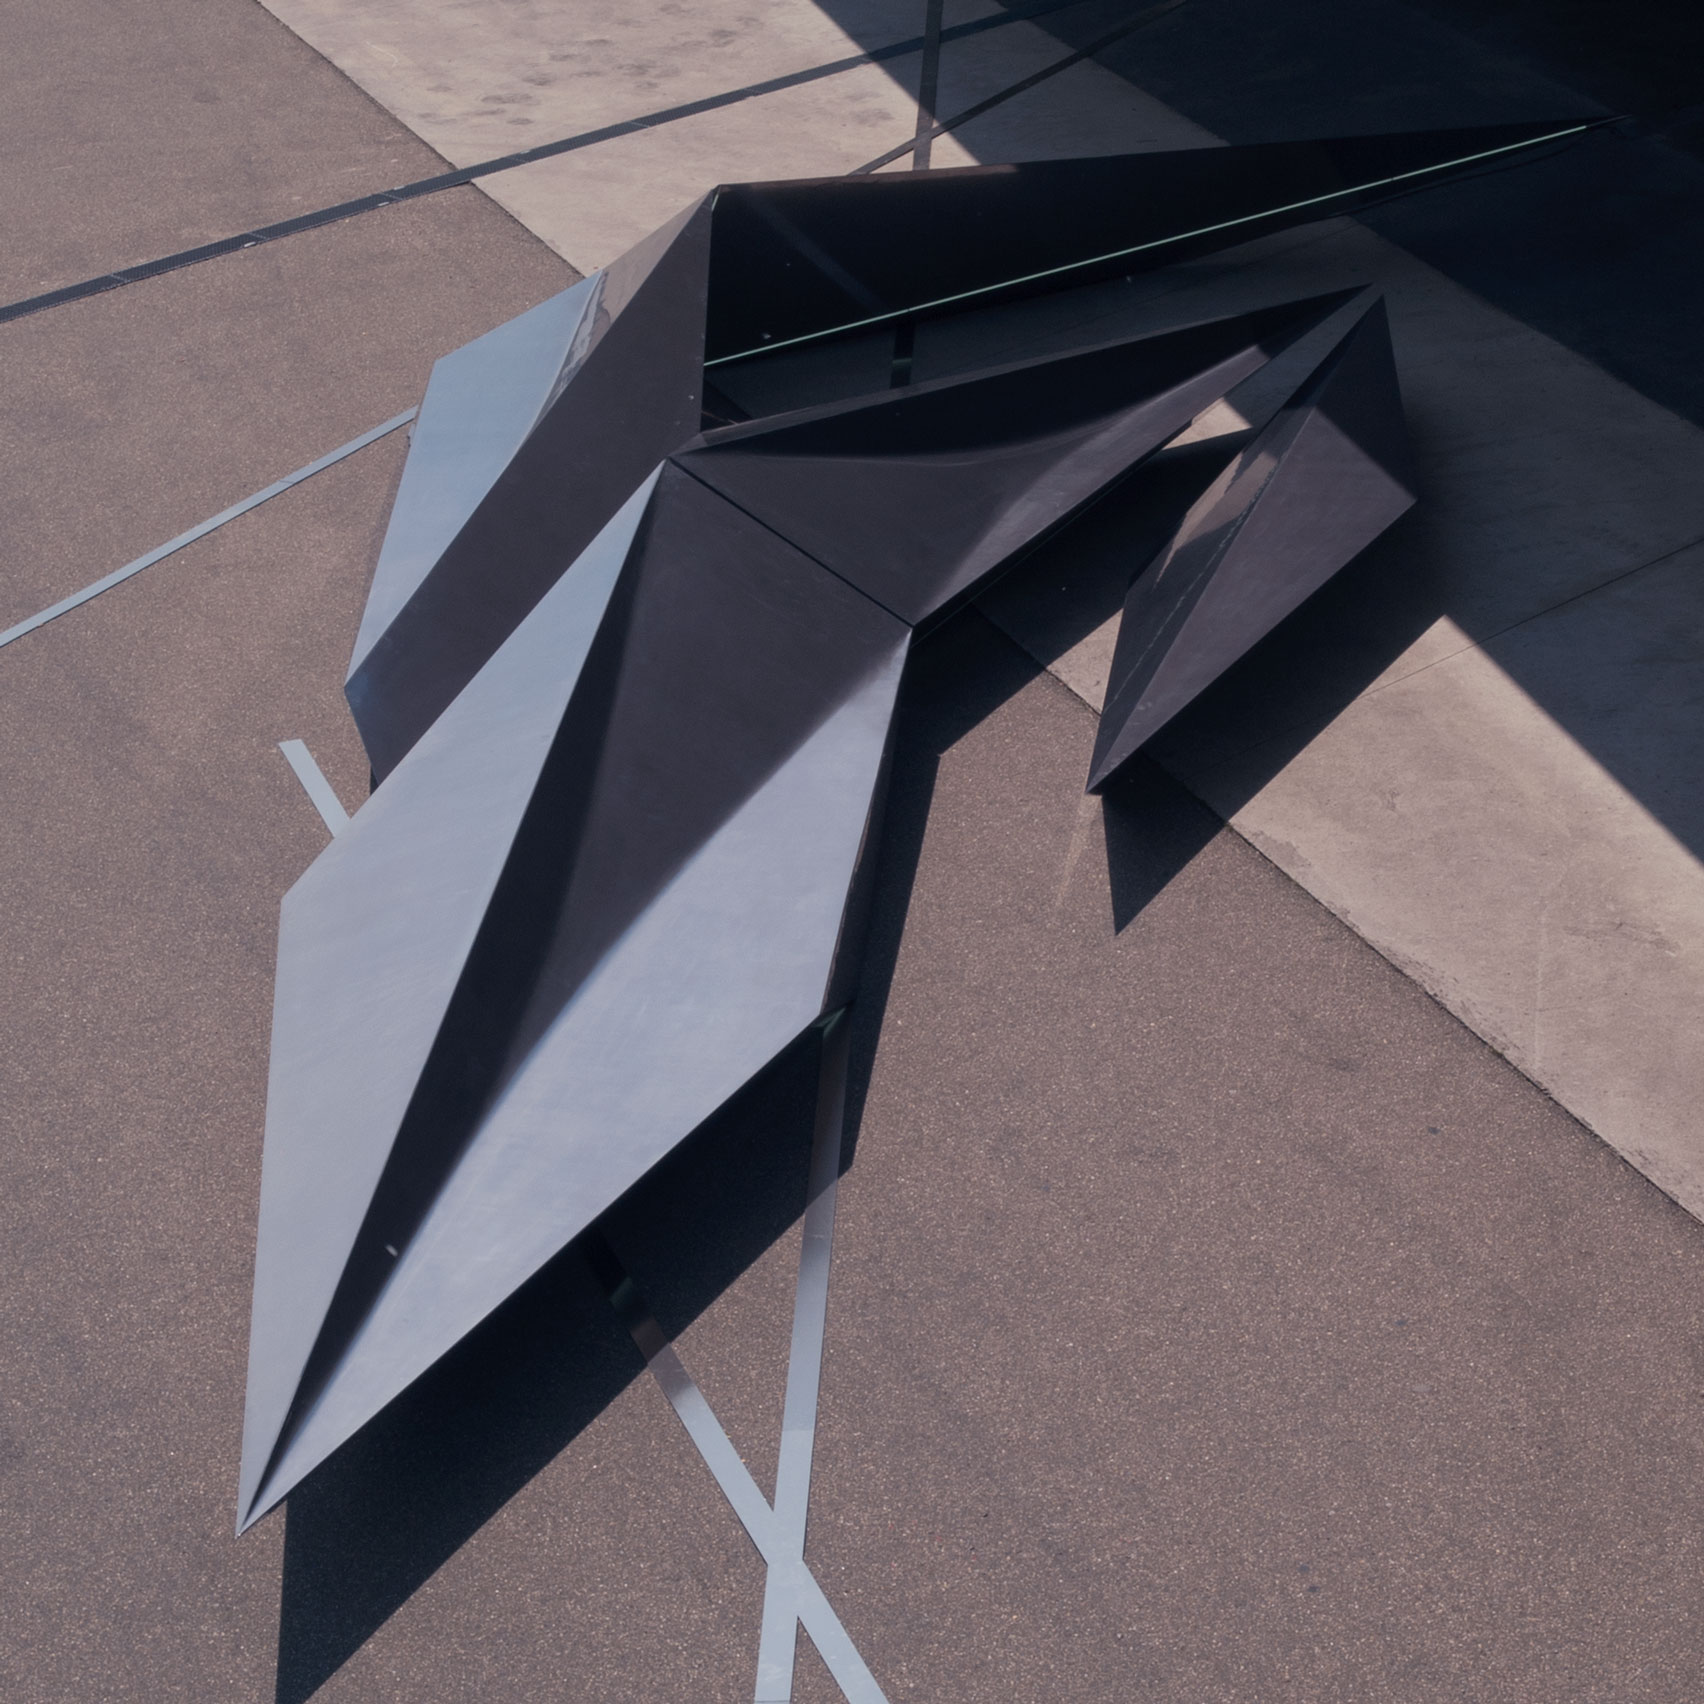 The 2013 Prima Installation by Zaha Hadid